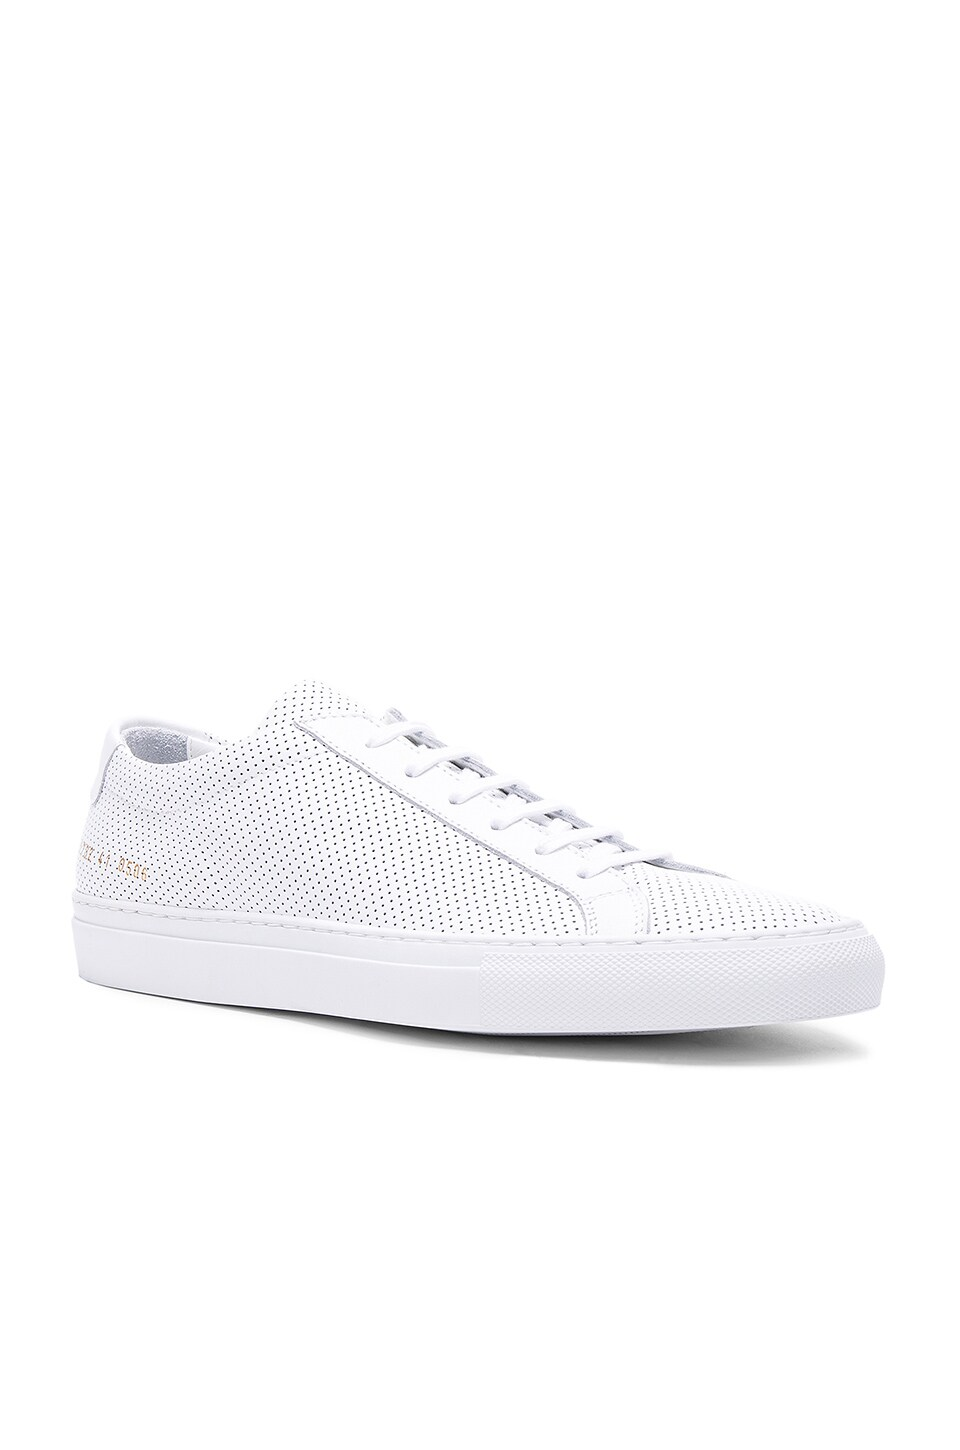 Common Projects Original Perforated Leather Achilles Low en White